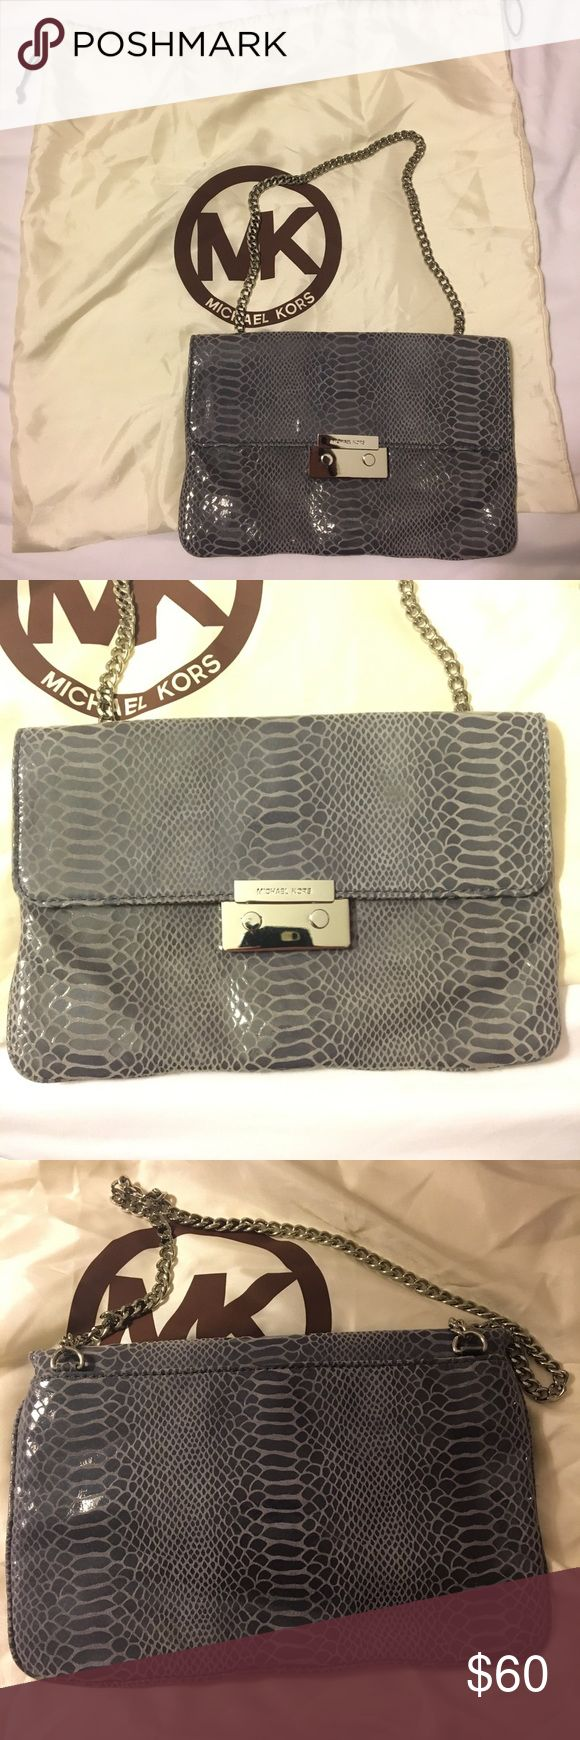 Michael Kors Silver Shoulder Bag Blue-Gray Fake Snake skin Purse with silver hardware. Worn once. Excellent condition. Comes with dust bag. Michael Kors Bags Shoulder Bags